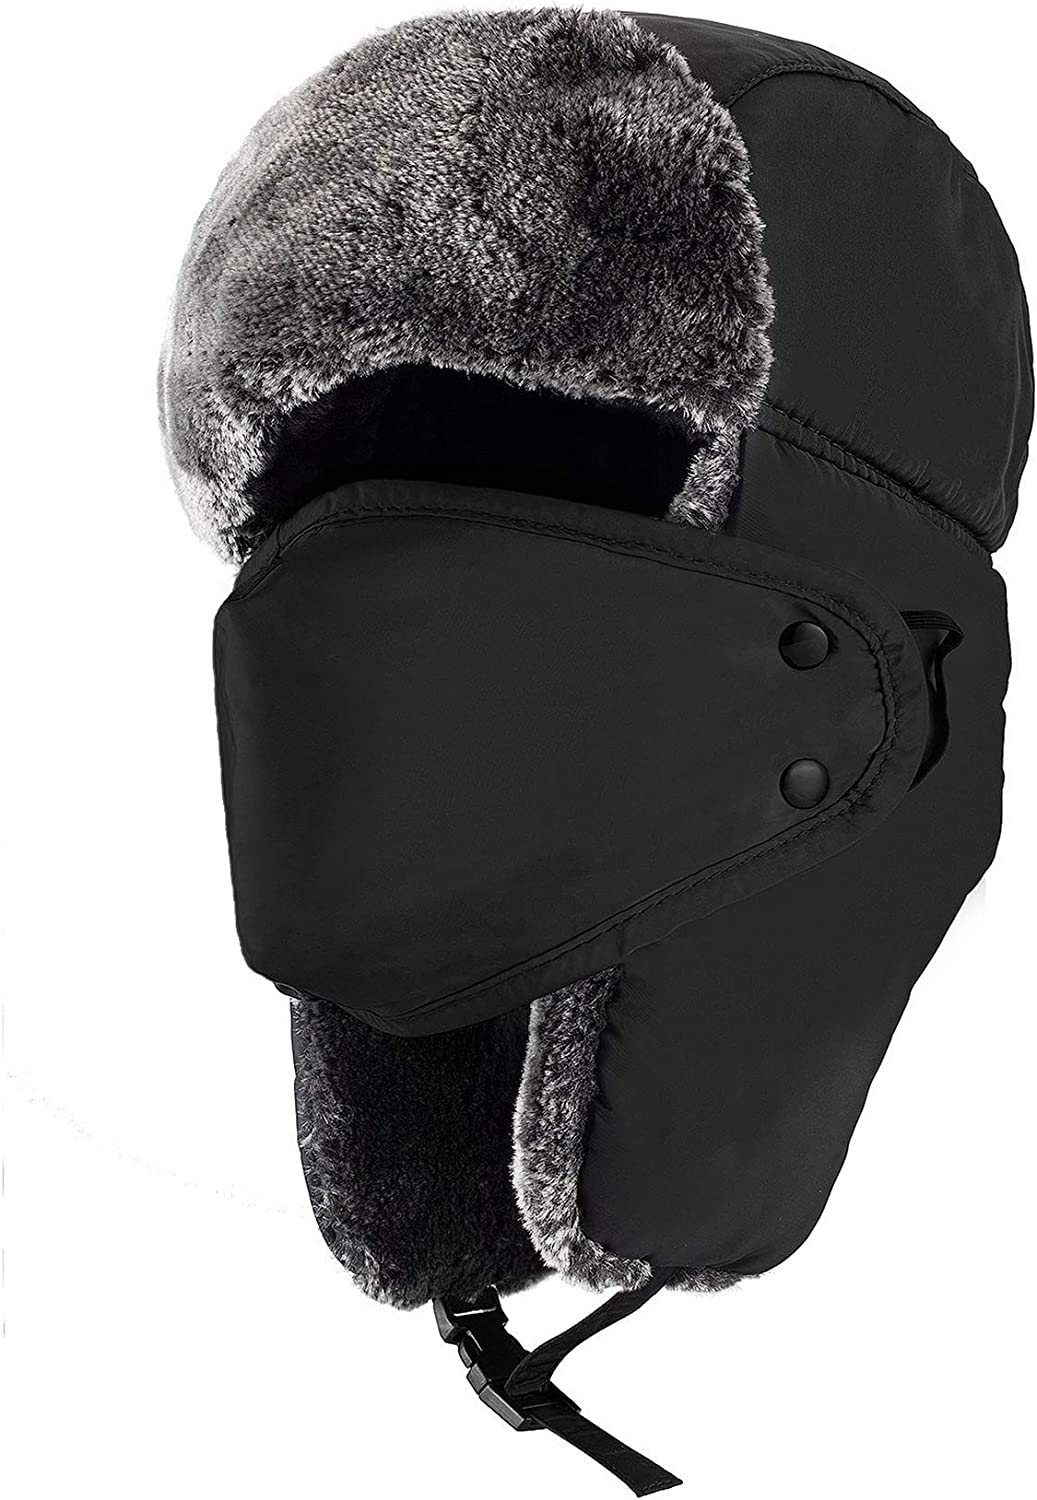 Mysuntown Unisex Winter Trooper Trapper Hat Hunting Hat Ushanka Ear Flap Chin Strap and Windproof Mask,Black,22-24 Inches ,One Size Fits All: Clothing